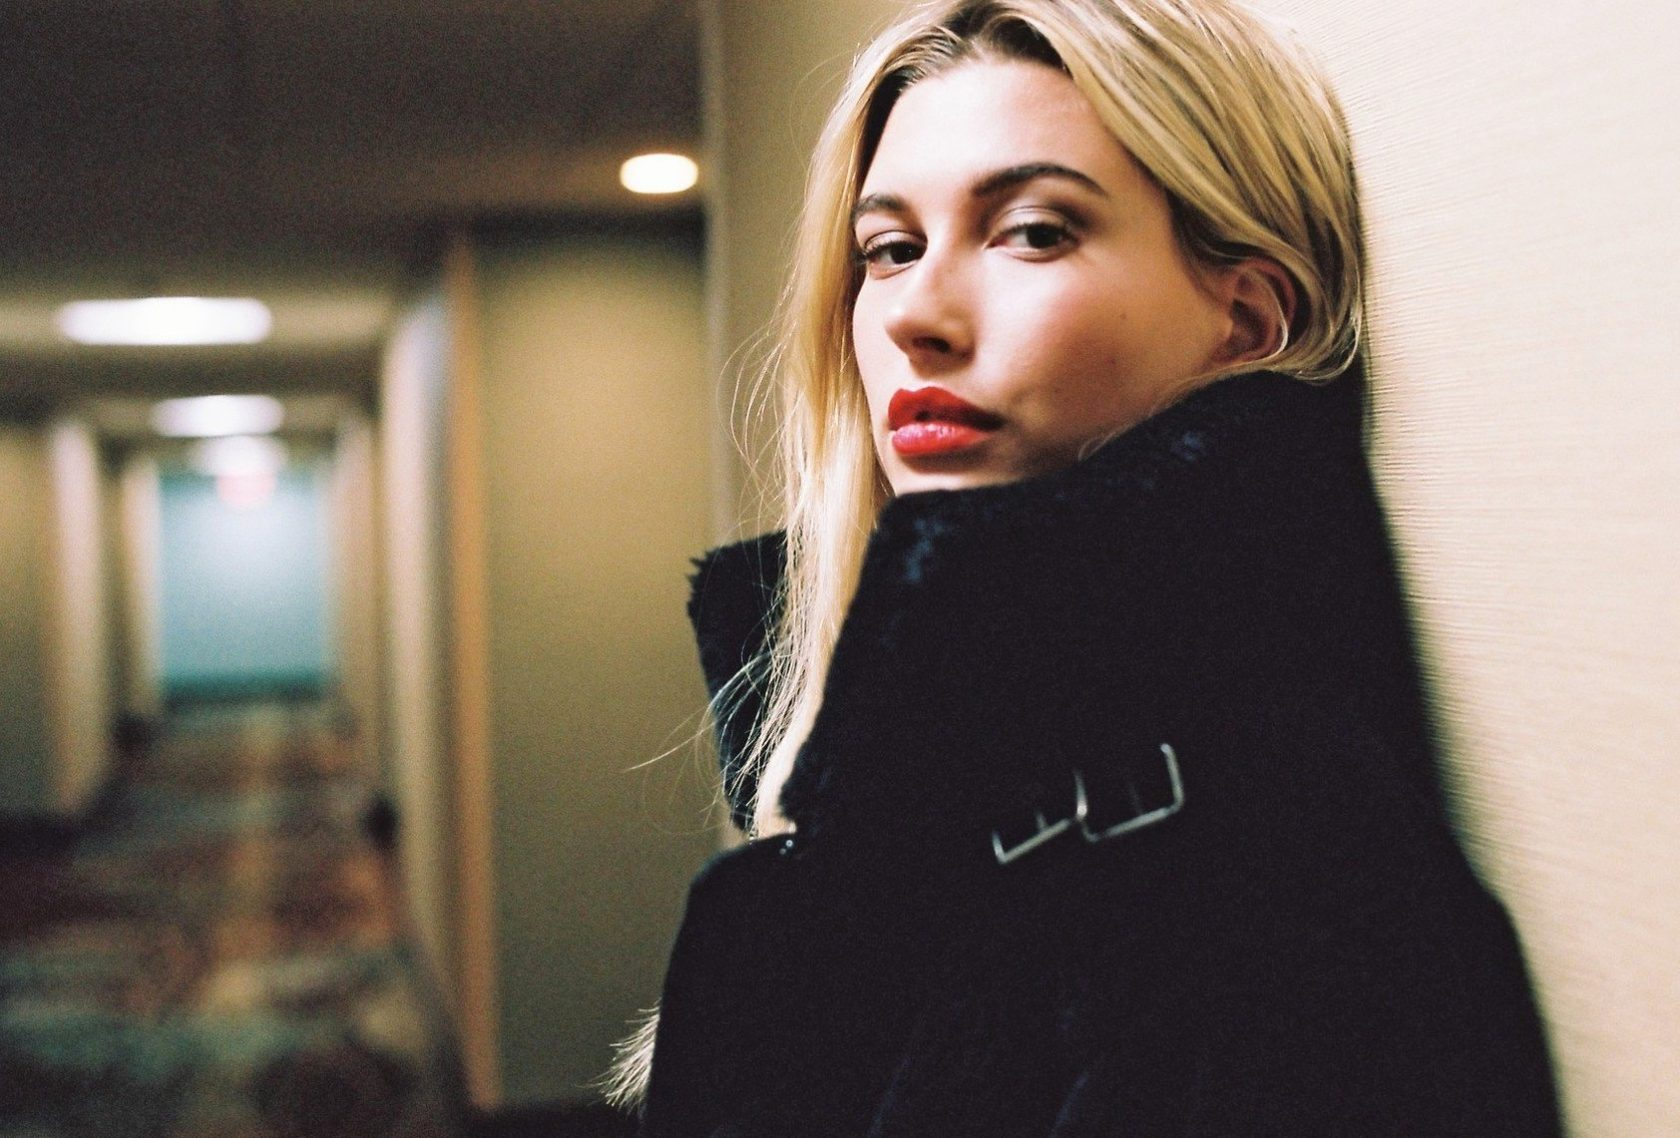 American fashion model Hailey Baldwin poses for Eleven Paris Fall Winter 2016 collection., Image: 308217405, License: Rights-managed, Restrictions: EDITORIAL USE ONLY, Model Release: no, Credit line: Profimedia, Balawa Pics